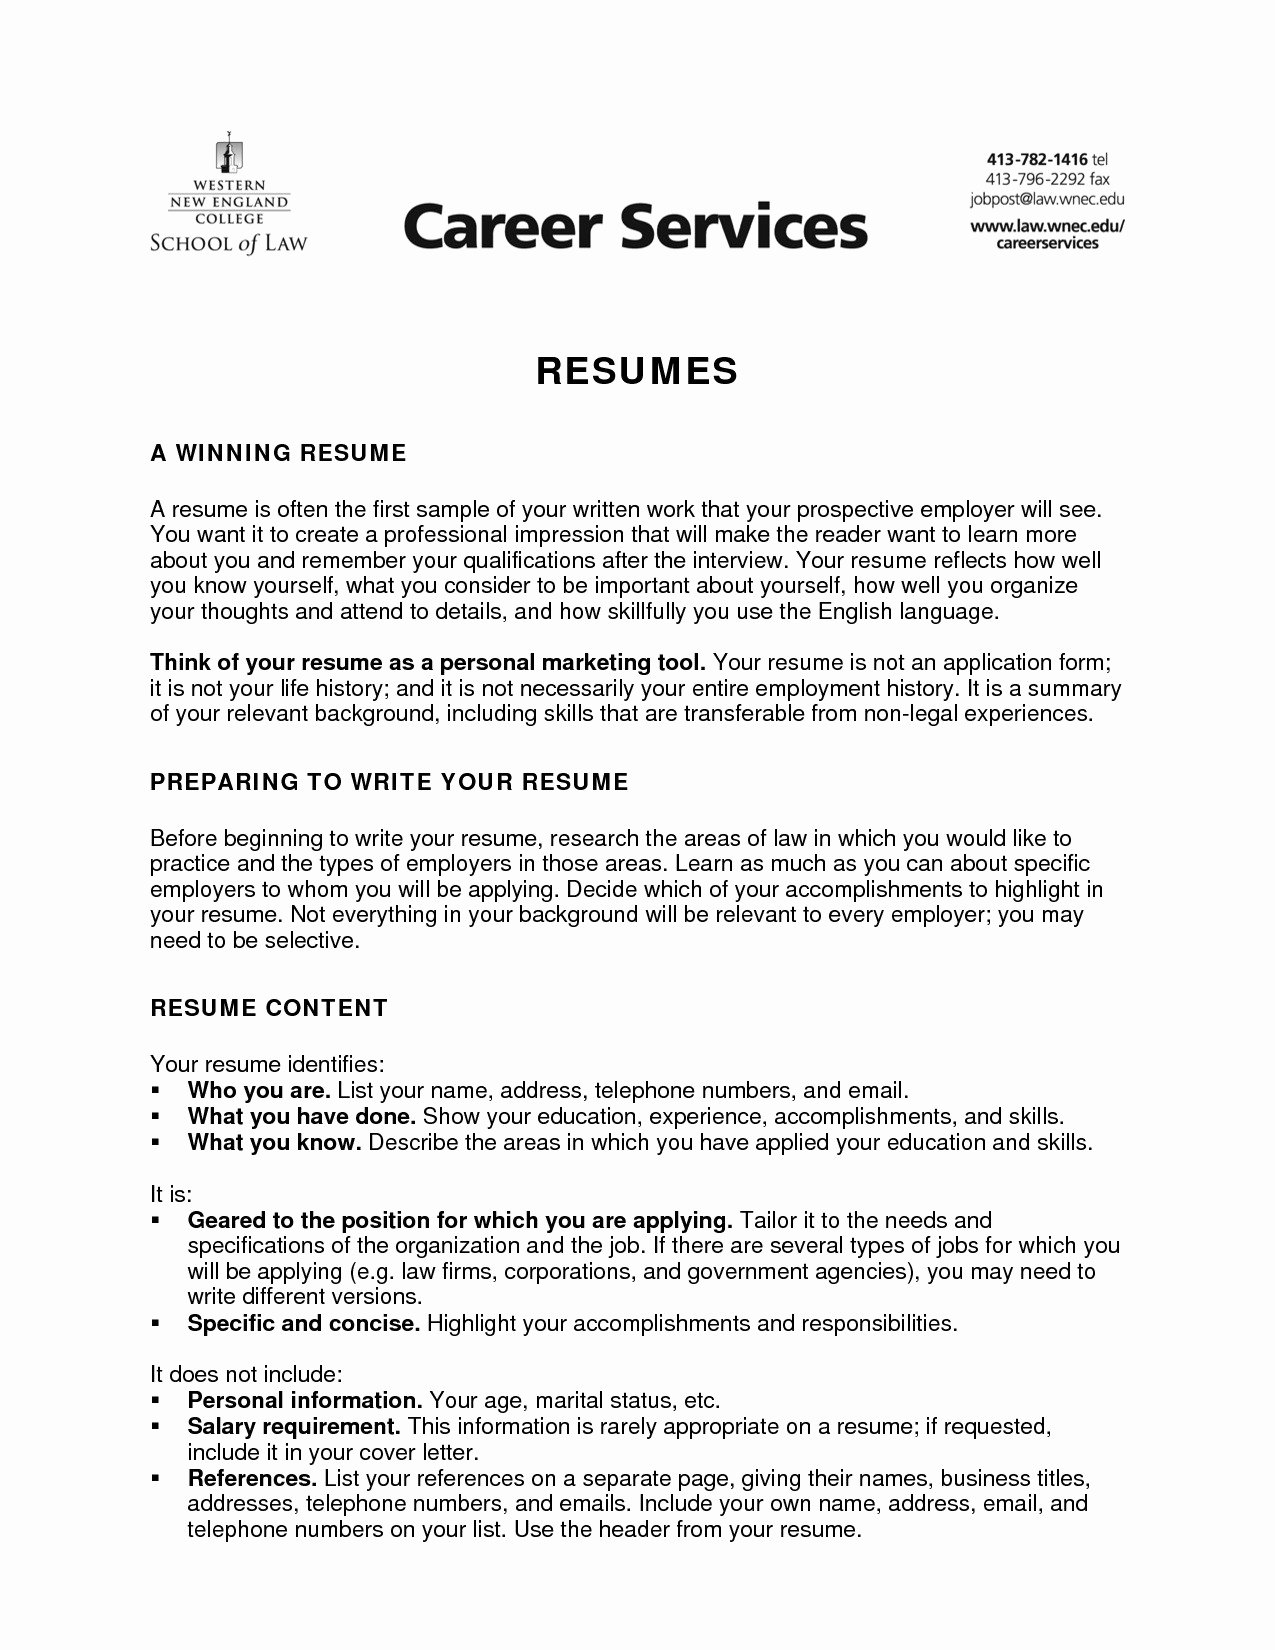 Resume Summary Examples for Students Resume Ideas